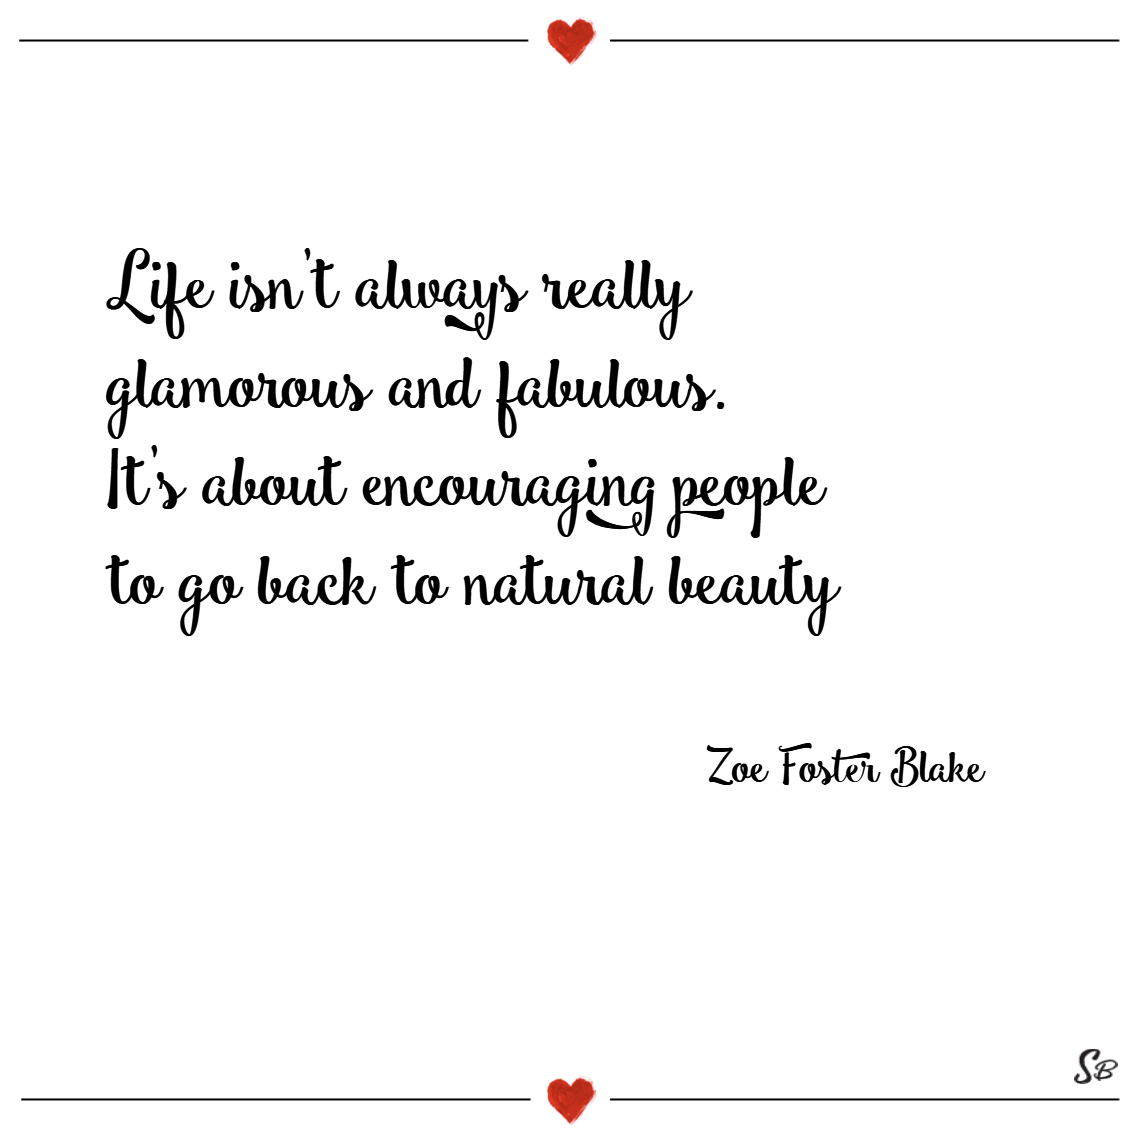 Life isn't always really glamorous and fabulous. it's about encouraging people to go back to natural beauty. – zoe foster blake